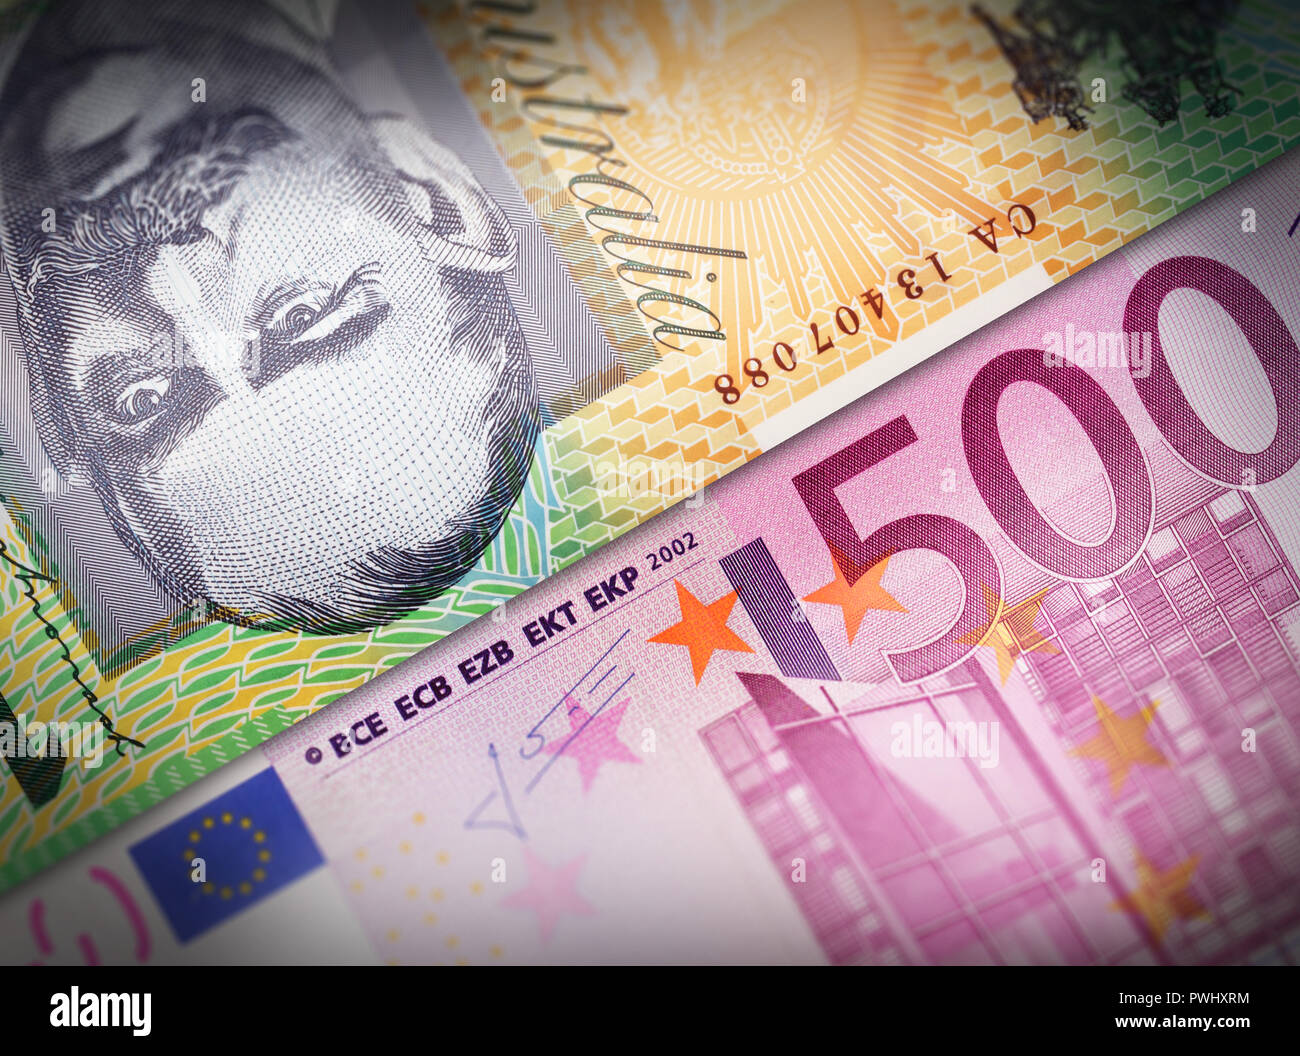 Two money bills aligned and setup next to each other symbolizing exchange business concepts. Stock Photo